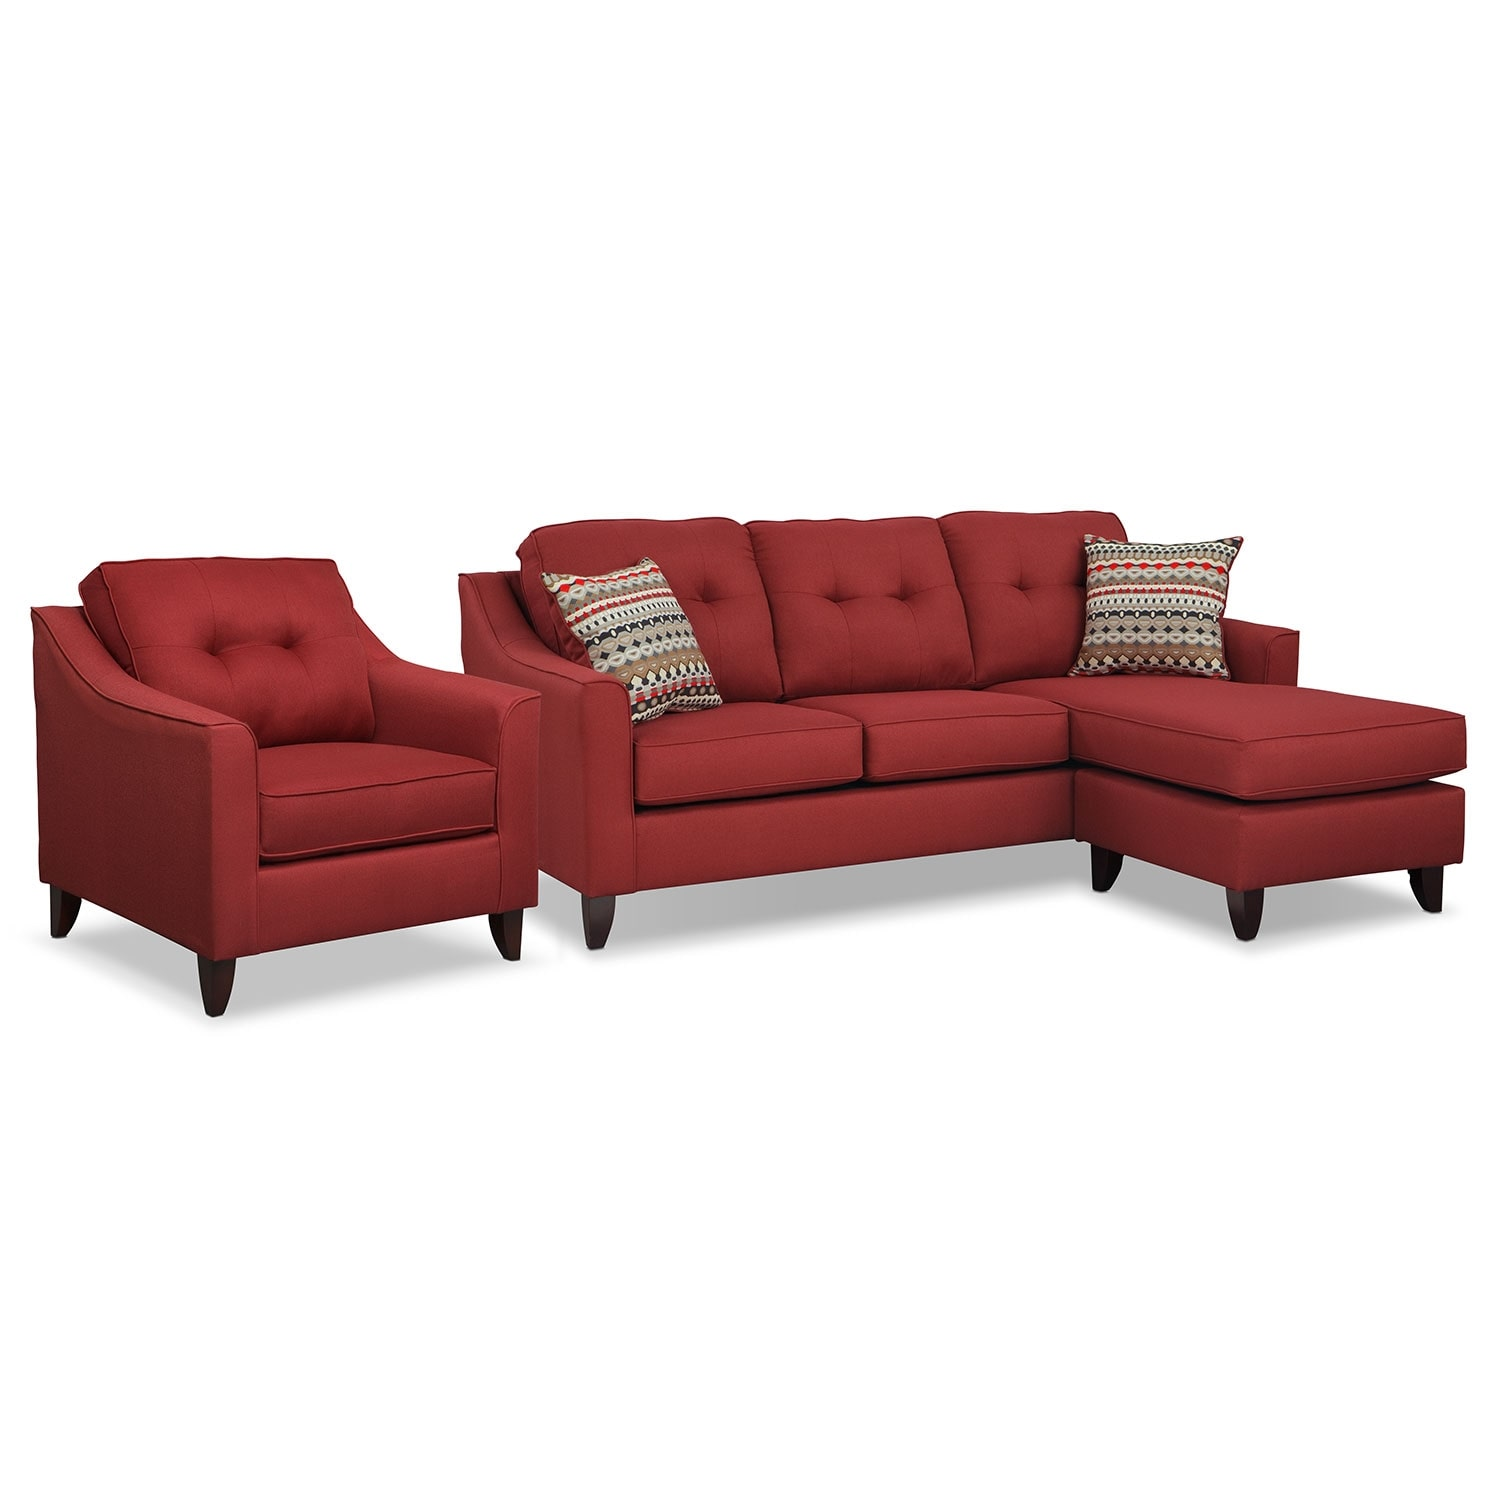 Living Room Furniture - Marco Red 2 Pc. Living Room w/ Chair